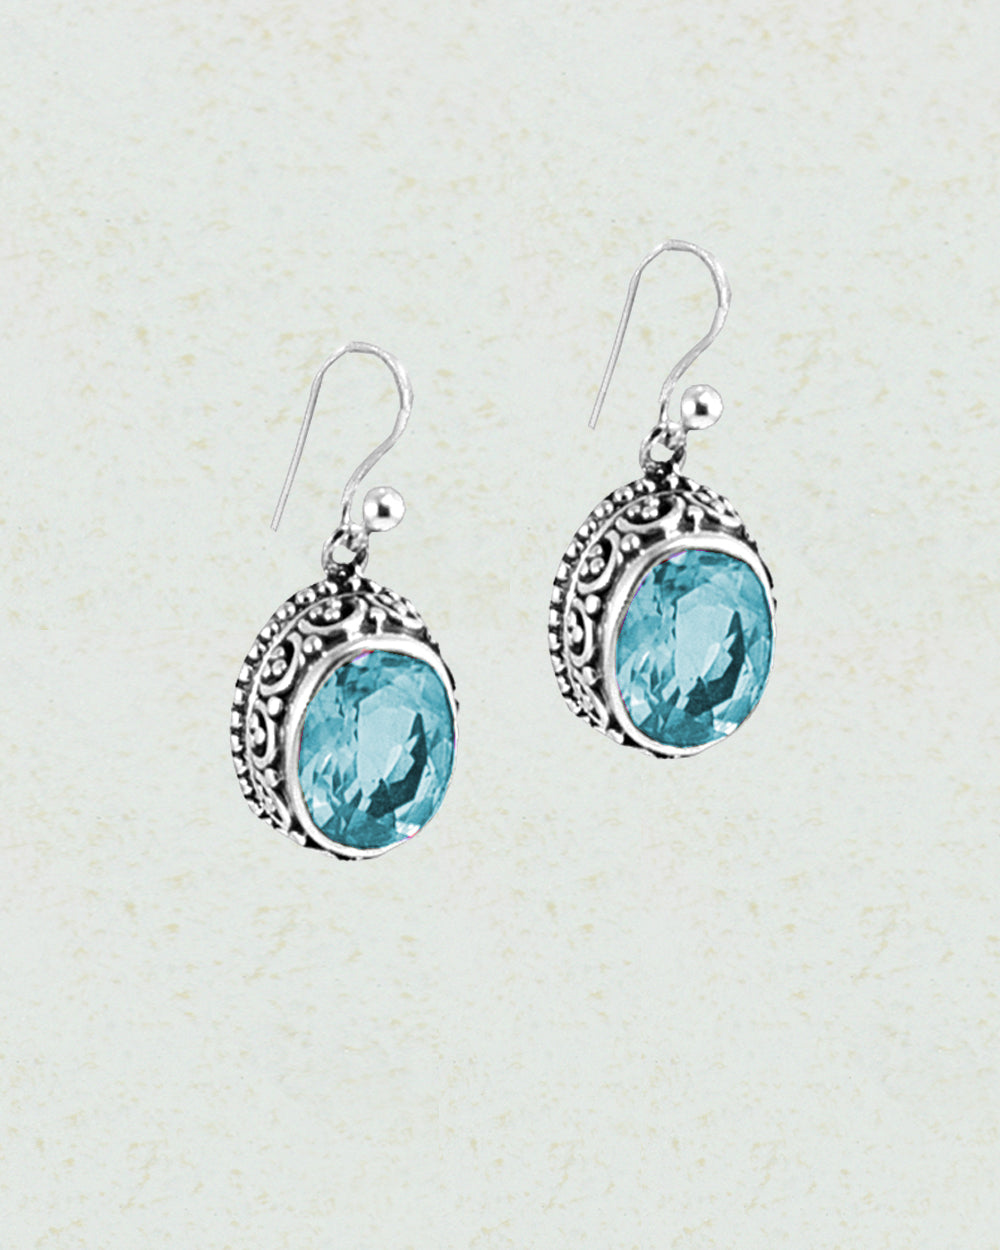 Lustrous Cushion Cut Blue Topaz Sterling Silver Earrings